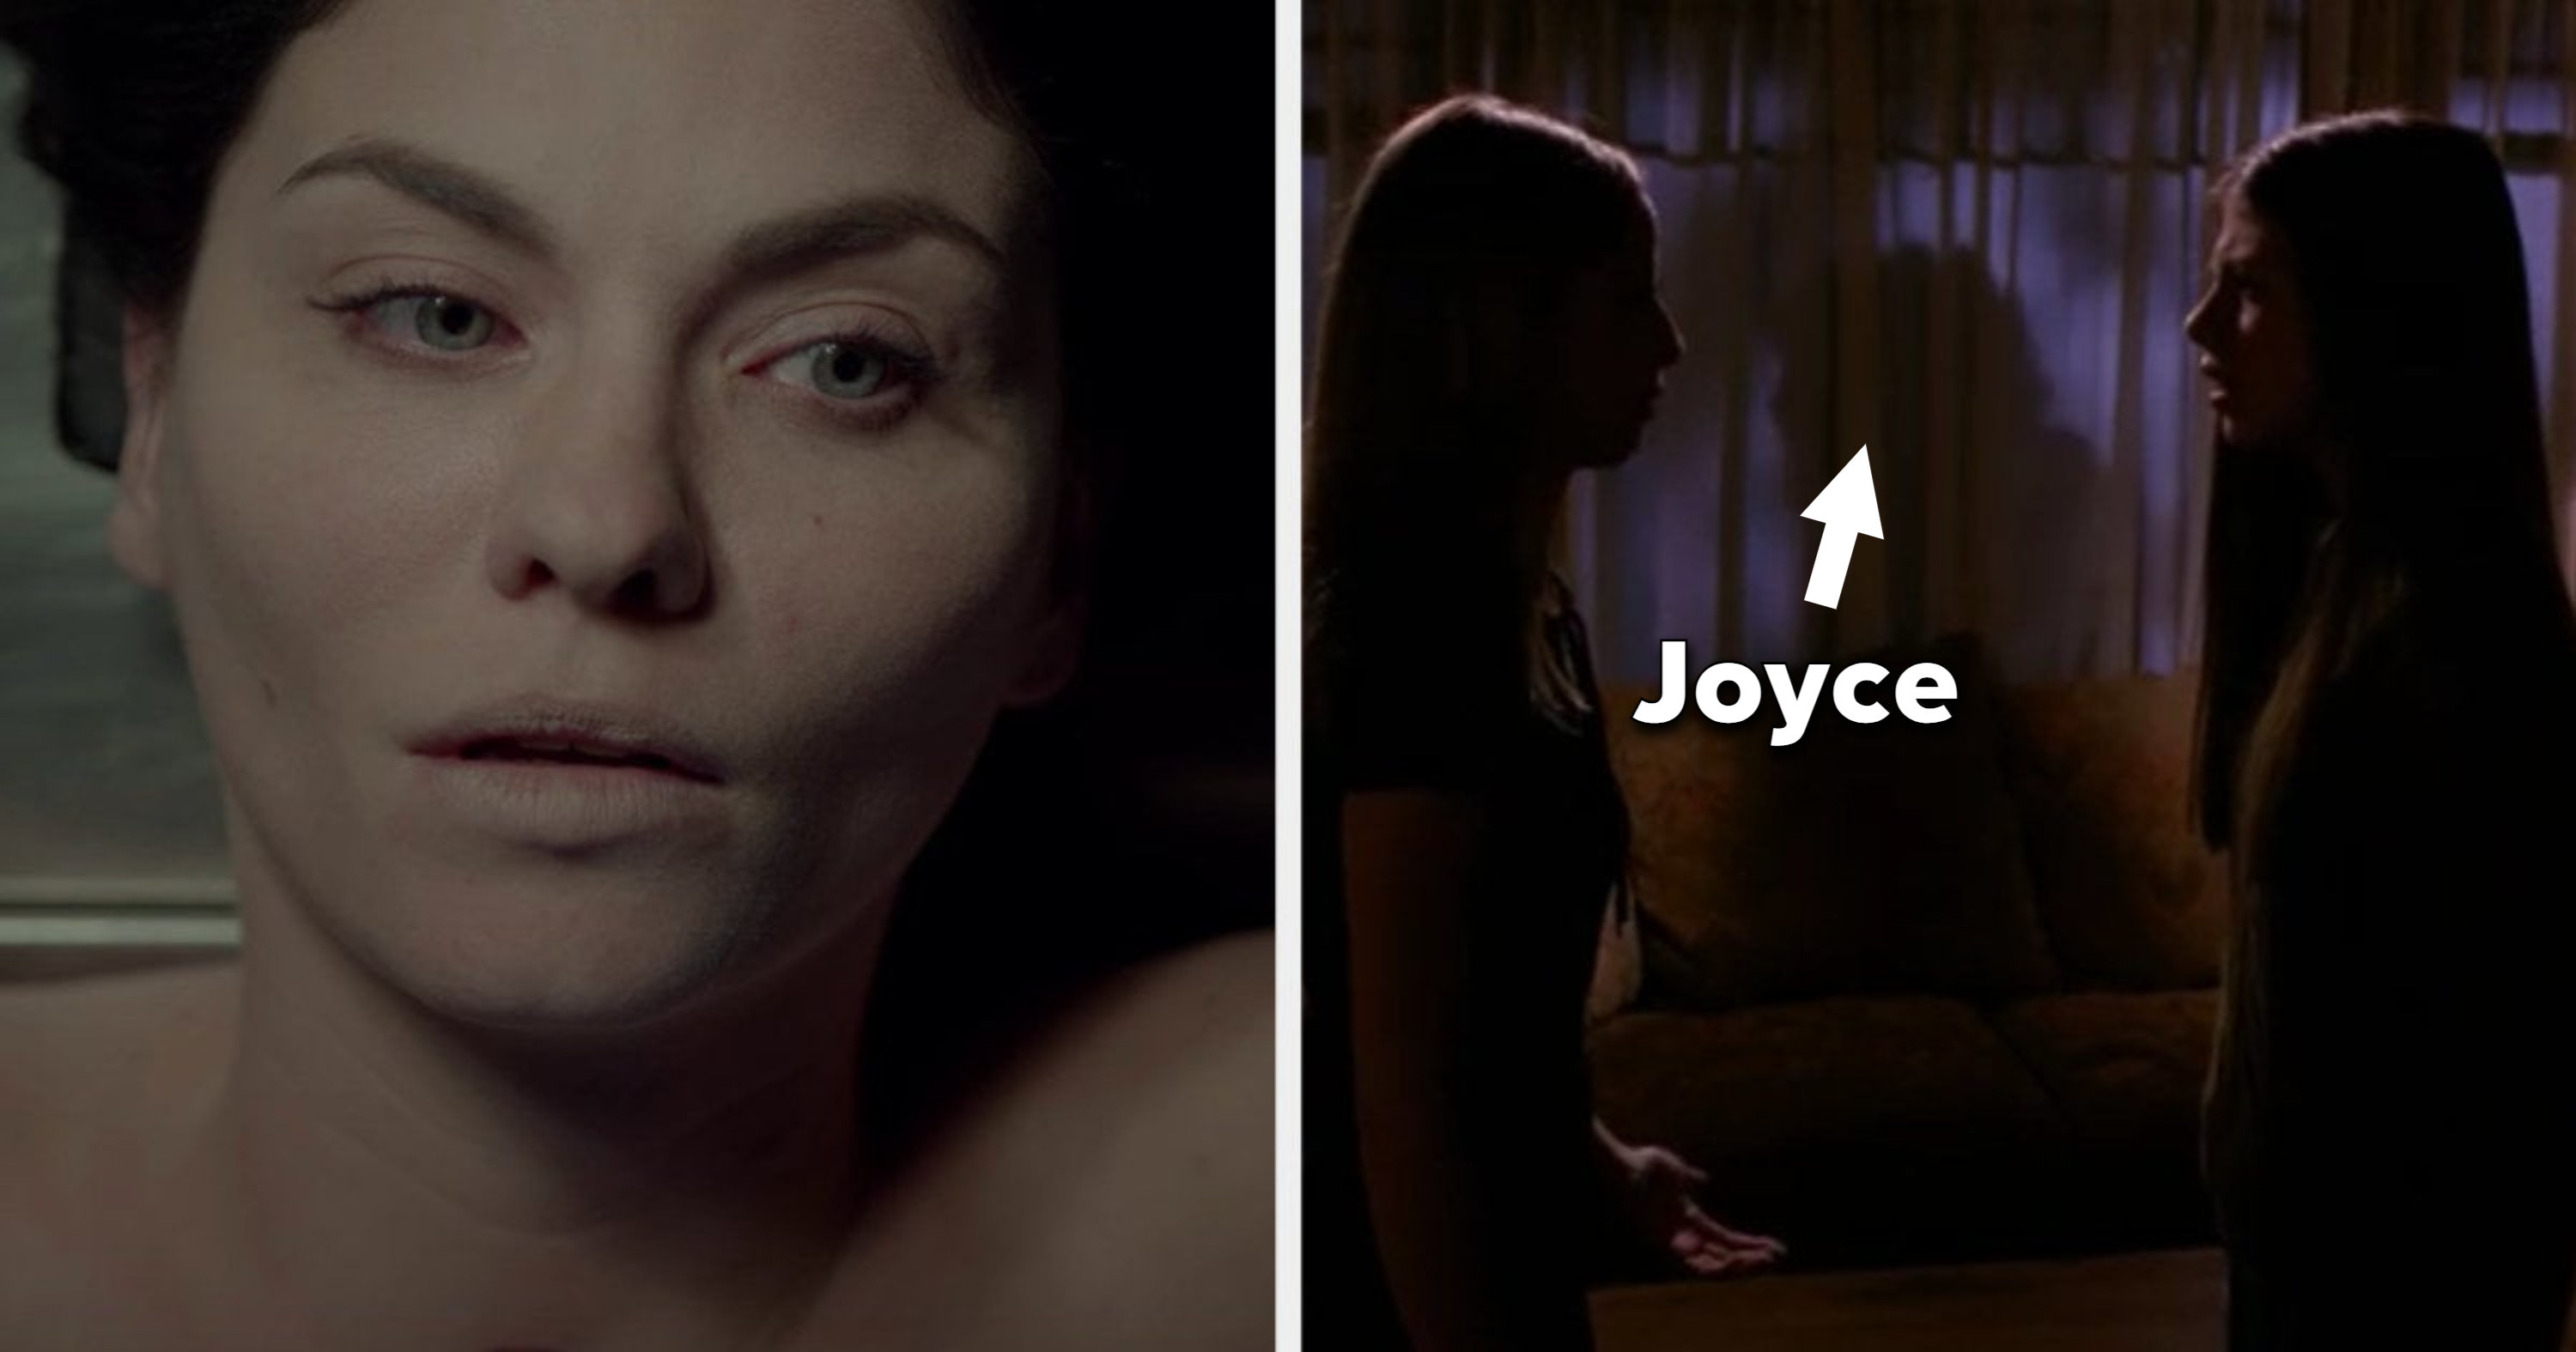 Jo waking up and Joyce as a sort of zombie in the background